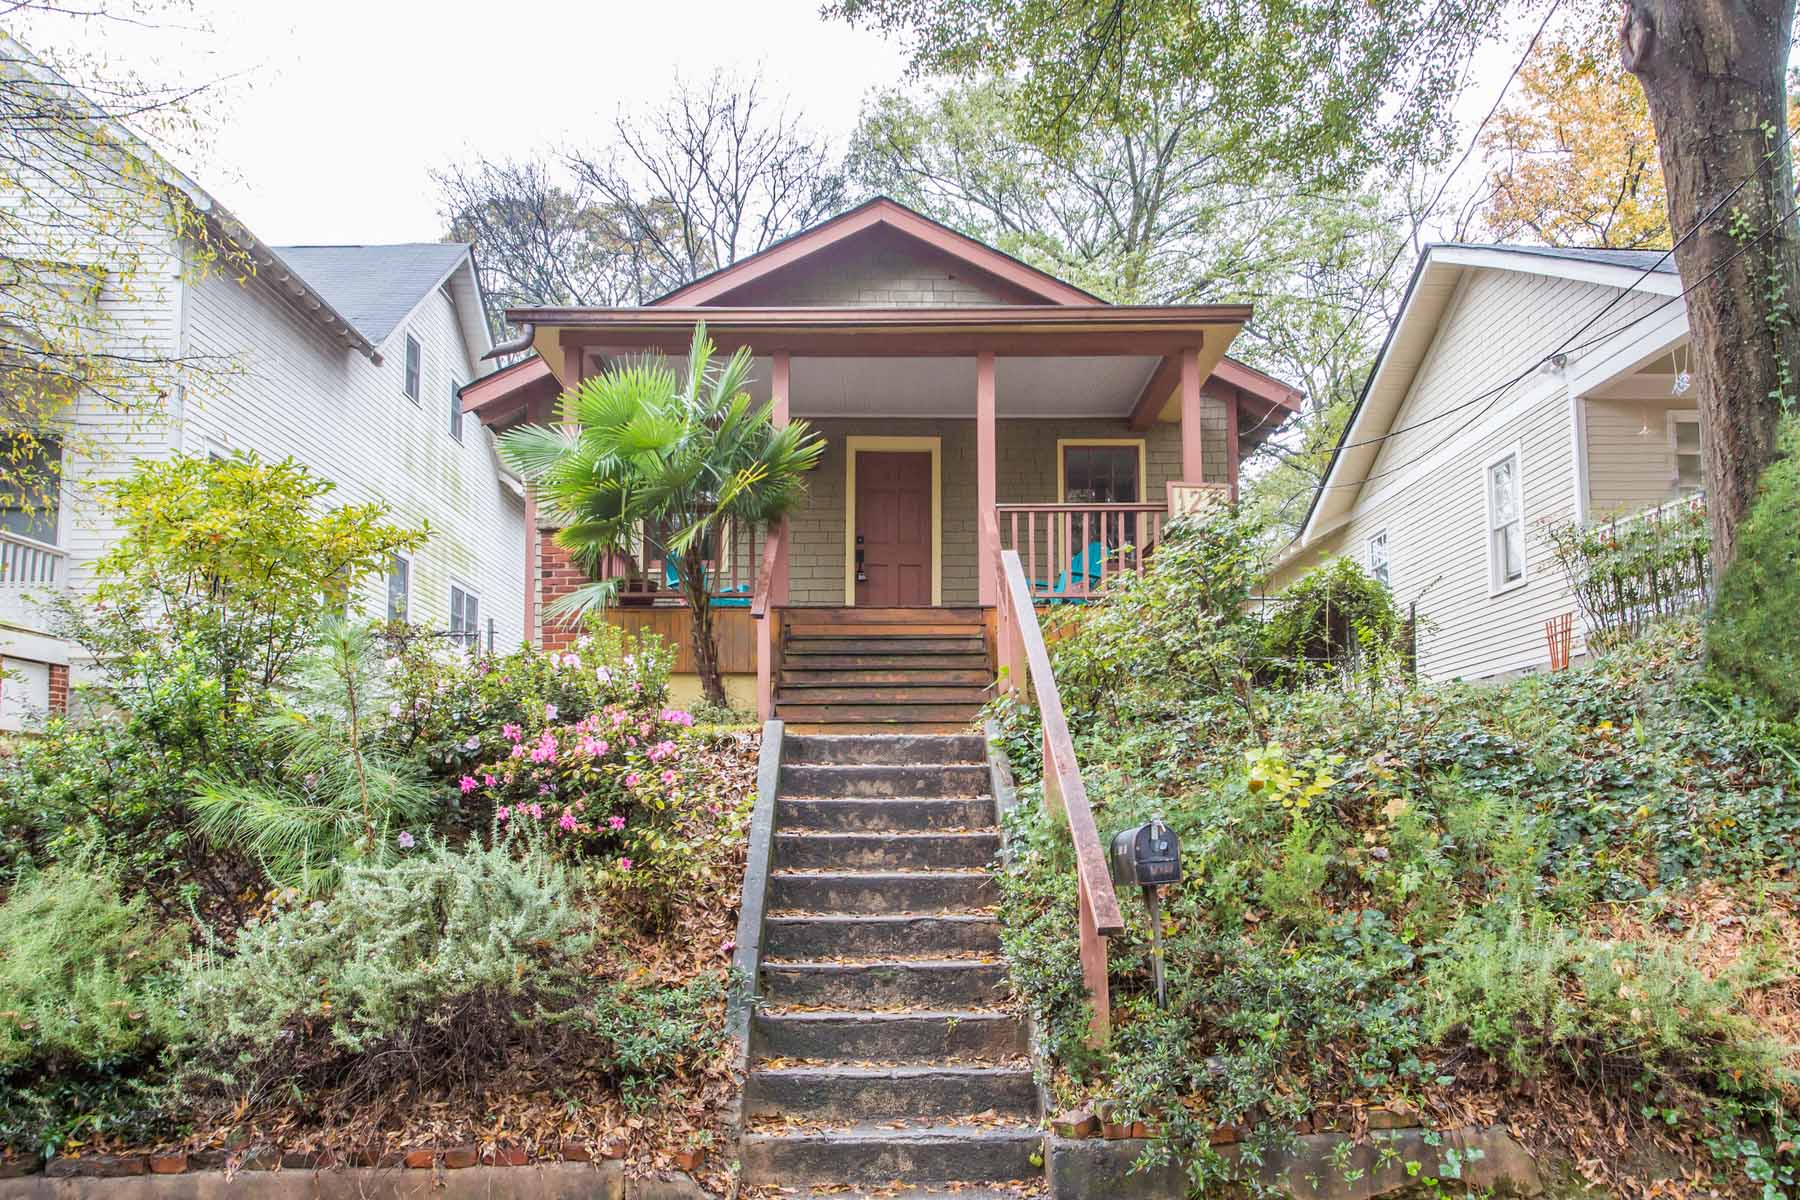 Single Family Home for Sale at Charming Cabbagetown Shake Bungalow! 125 Pearl Street SE Cabbagetown, Atlanta, Georgia 30316 United States